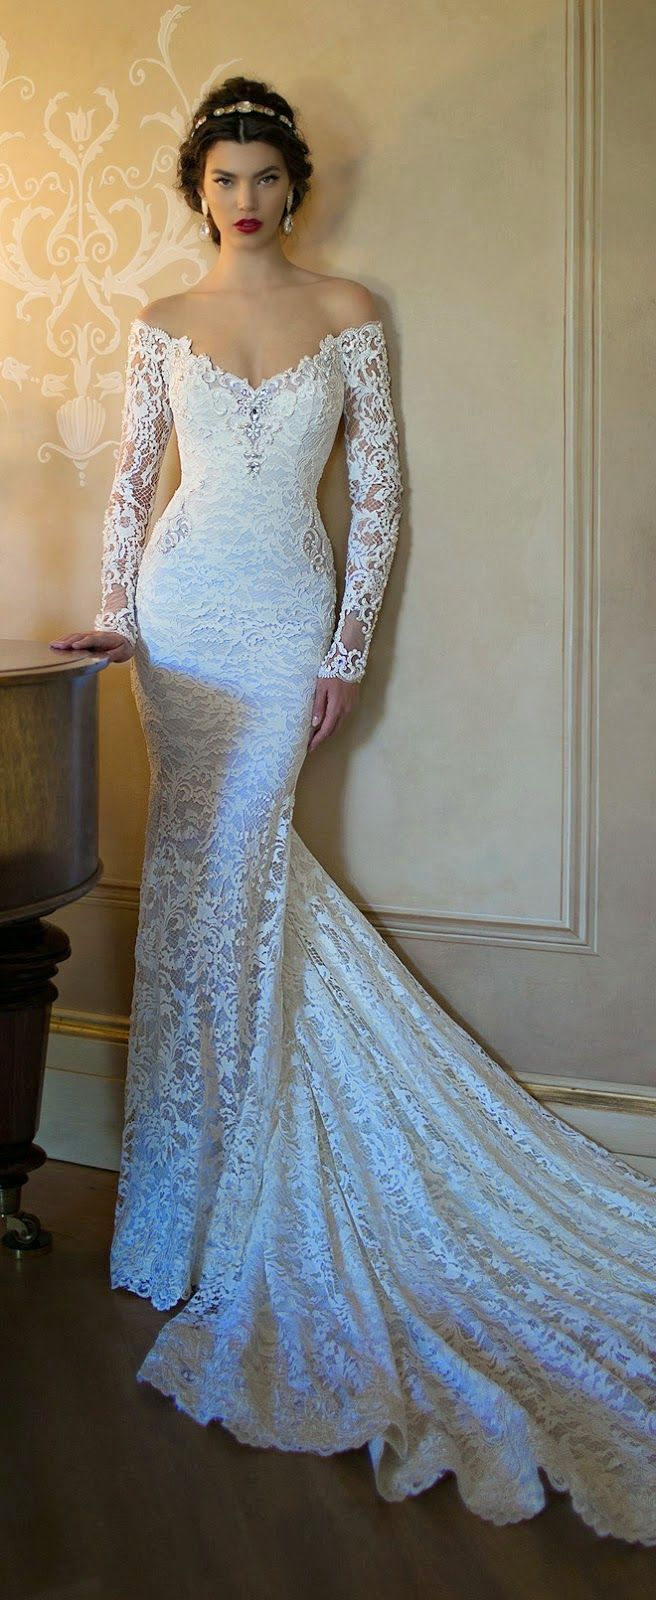 Best Wedding Dresses of 2014 - Belle the Magazine . The Wedding Blog For The Sophisticated Bride